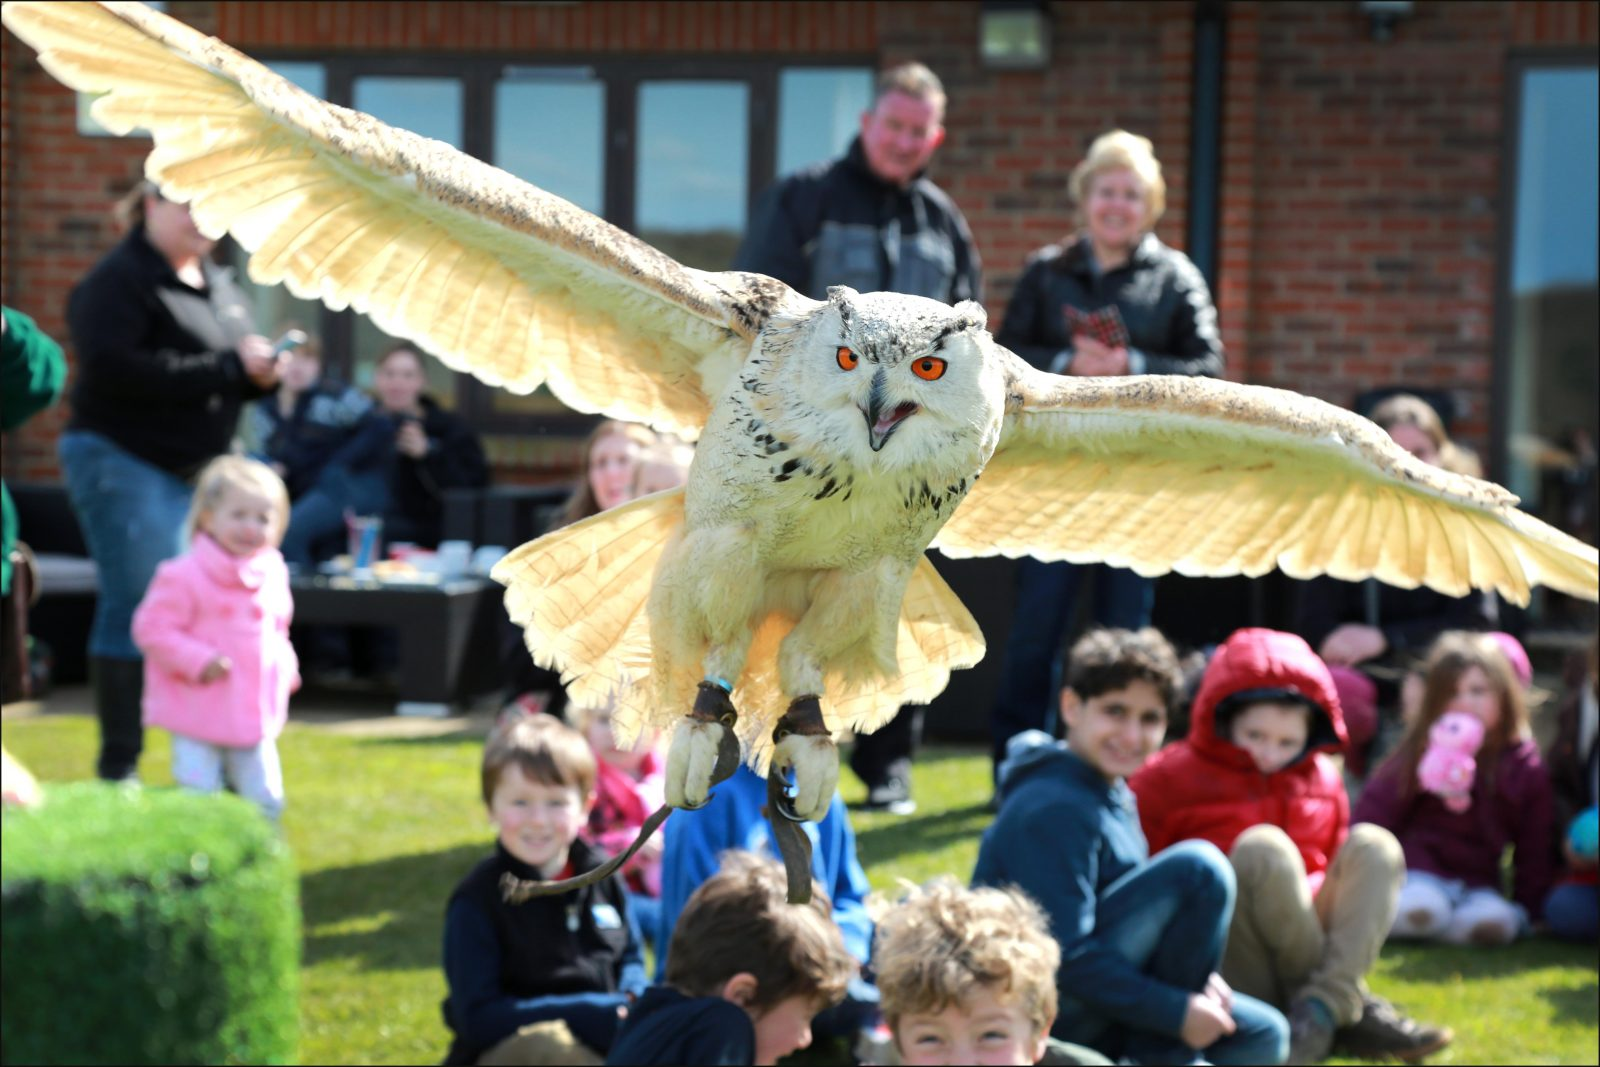 An eagle owl flies at Hamptworth Golf and Country Club open day to mark the official opening of Barny's bar and restaurant.